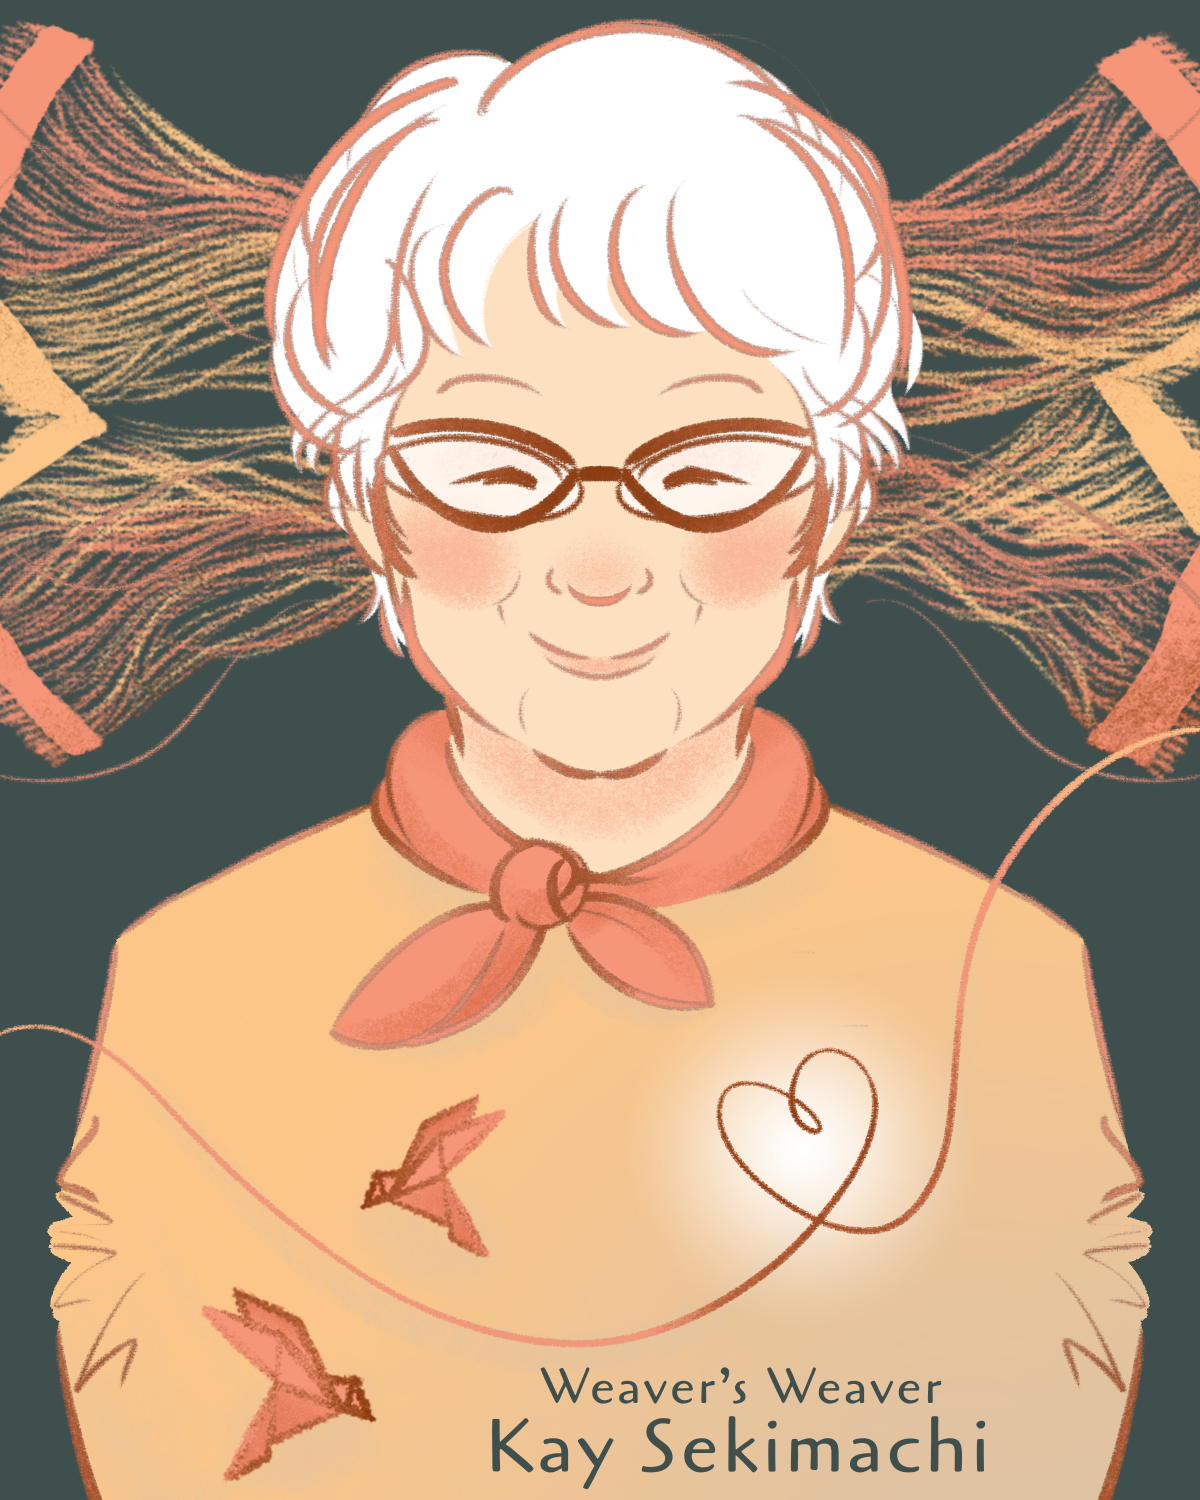 """The cover of a comic book with the title """"A Weaver's Weaver."""" It shows an older woman surrounded by thread. She has white hair and a slight smile."""